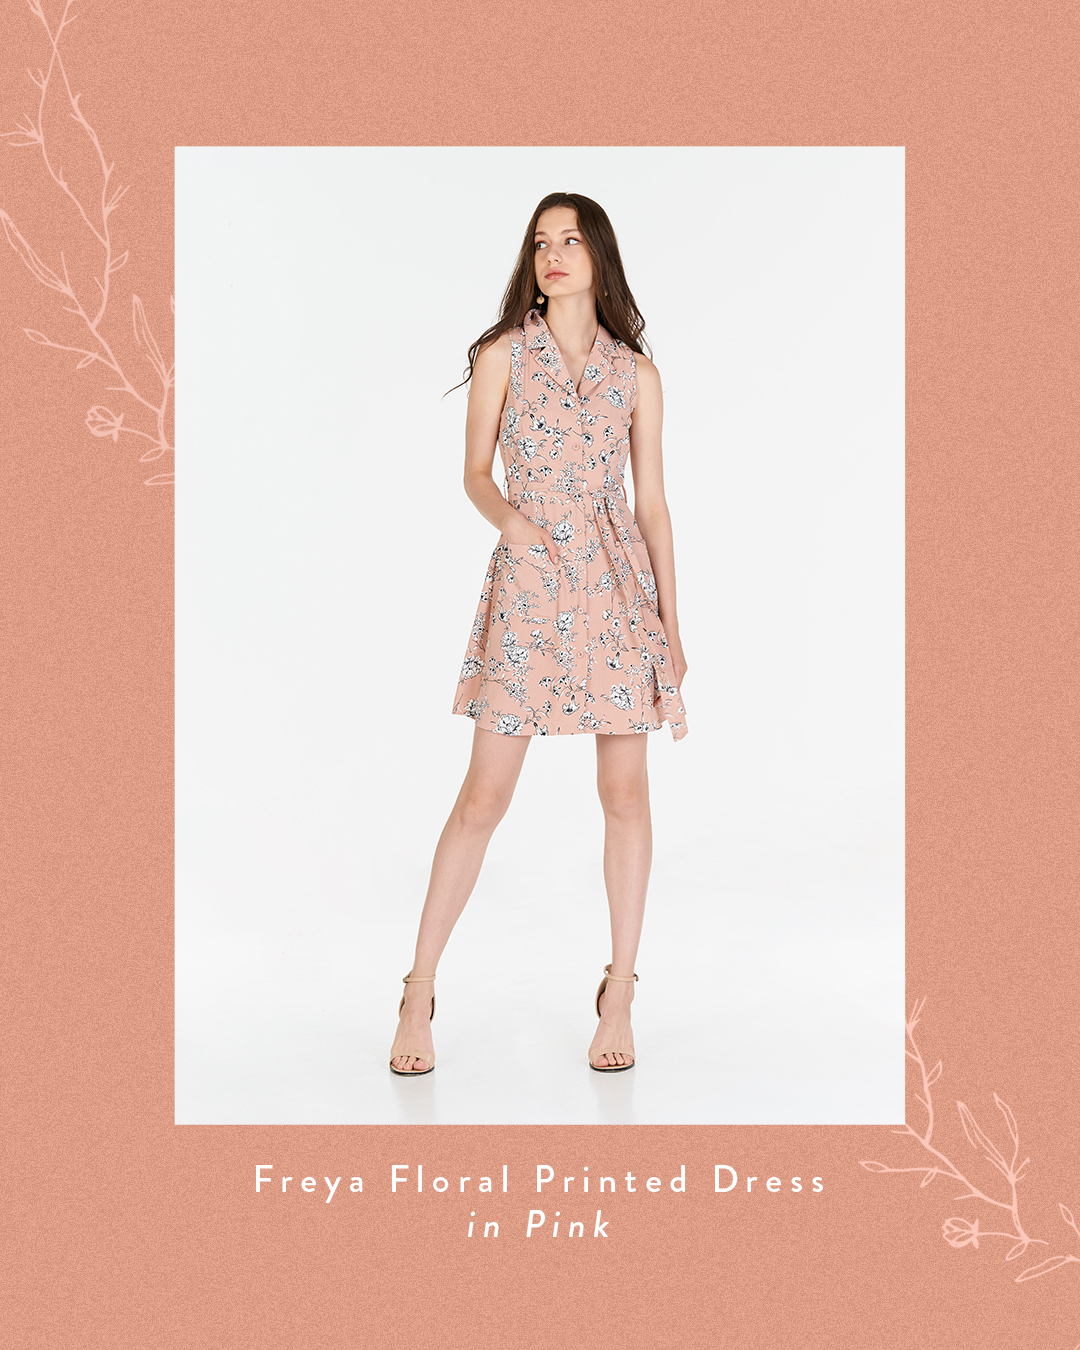 Freya Floral Printed Dress